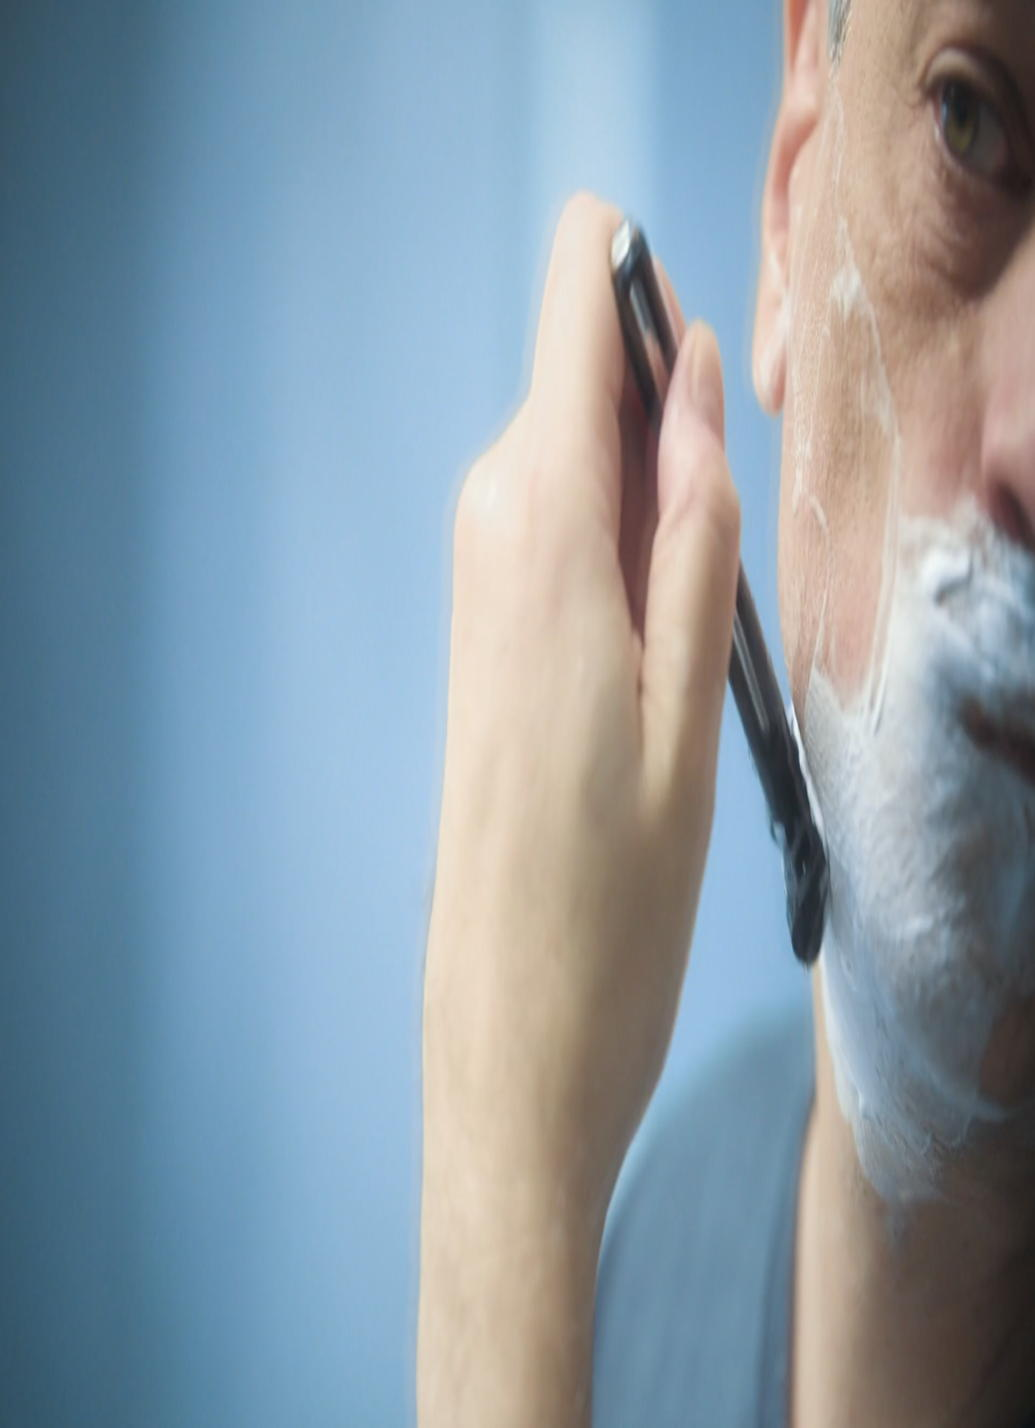 Man using a OneBlade razor to shave